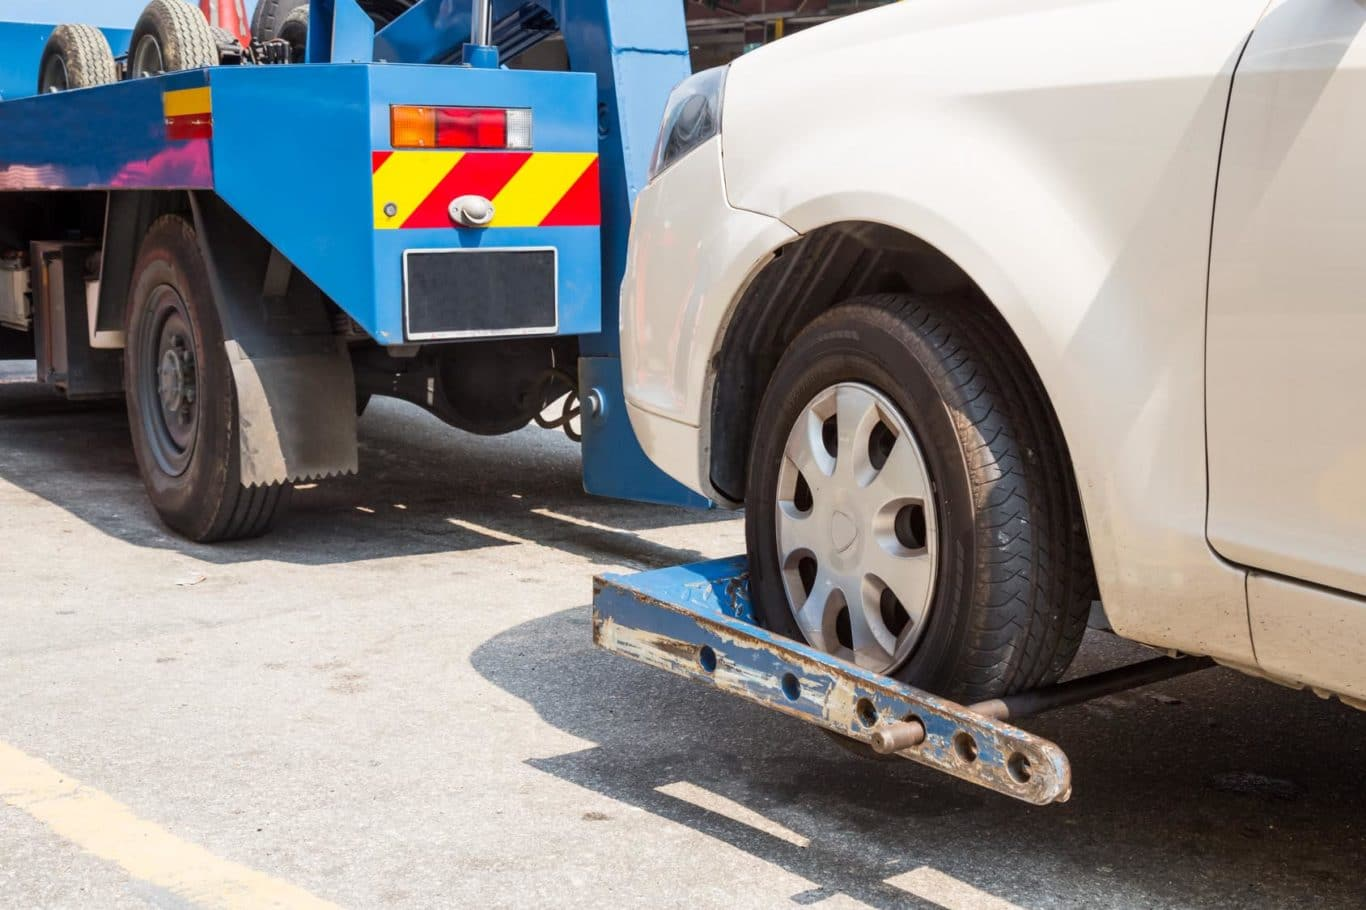 Dublin 2 (D2) expert Car Towing services